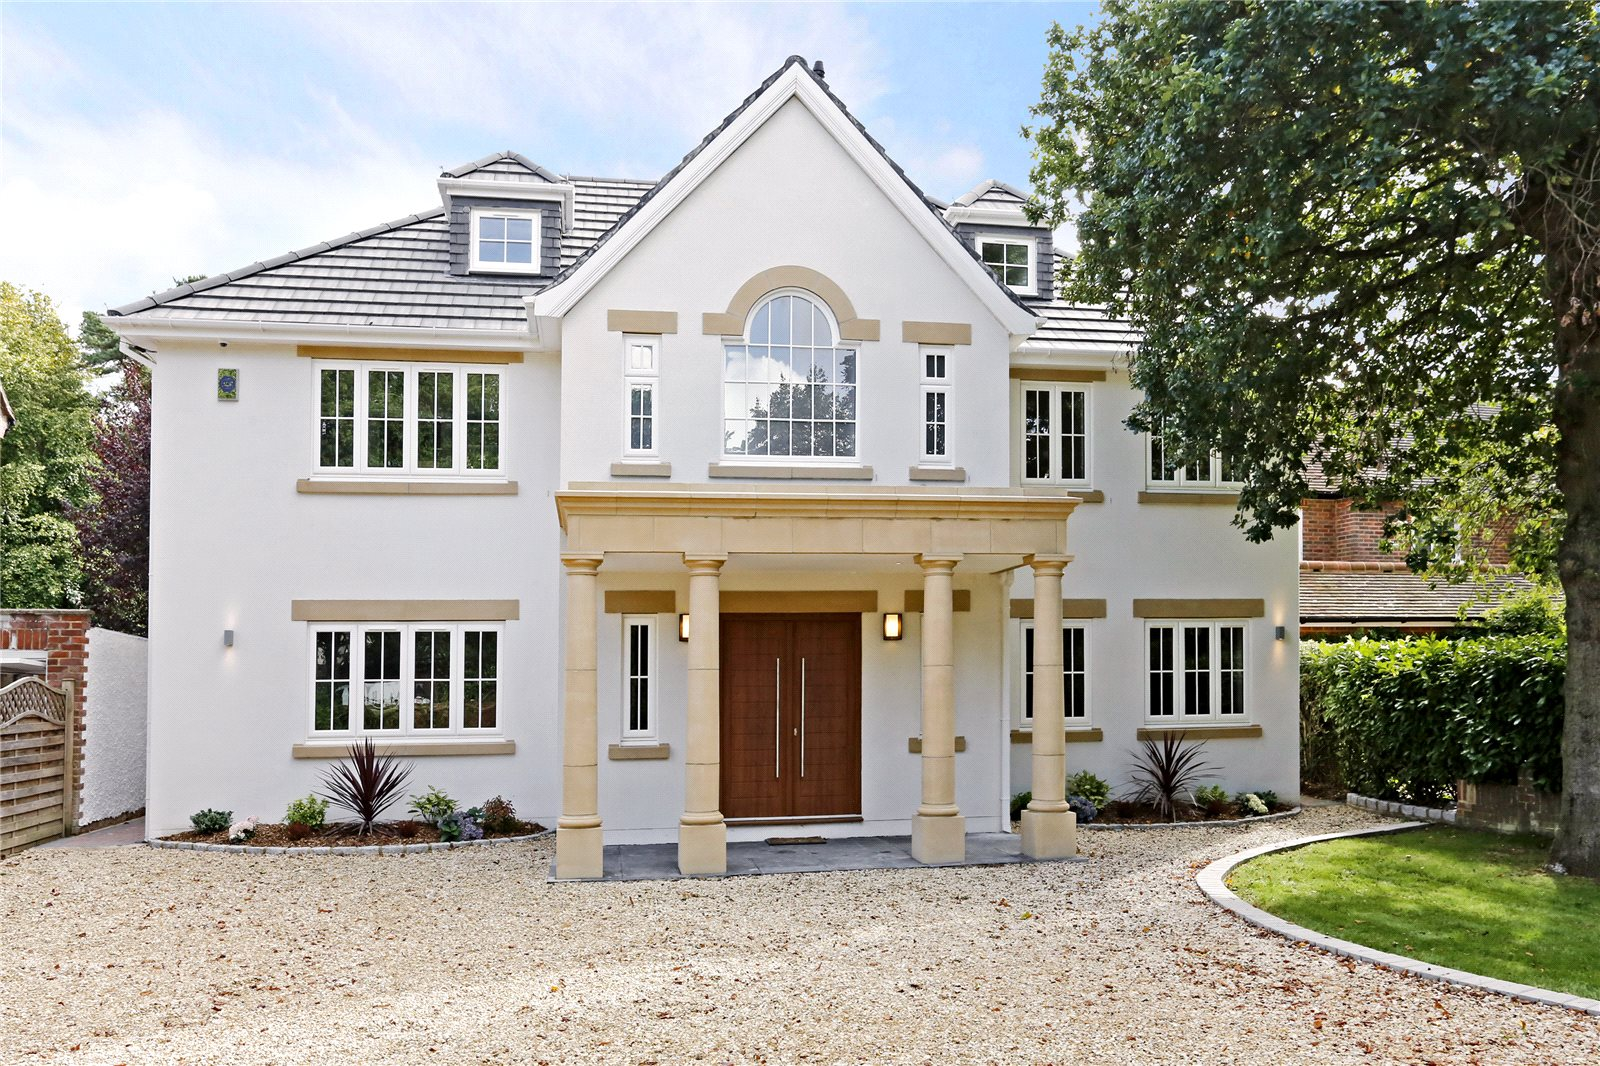 Casa Unifamiliar por un Venta en Windsor Road, Gerrards Cross, Buckinghamshire, SL9 Gerrards Cross, Inglaterra